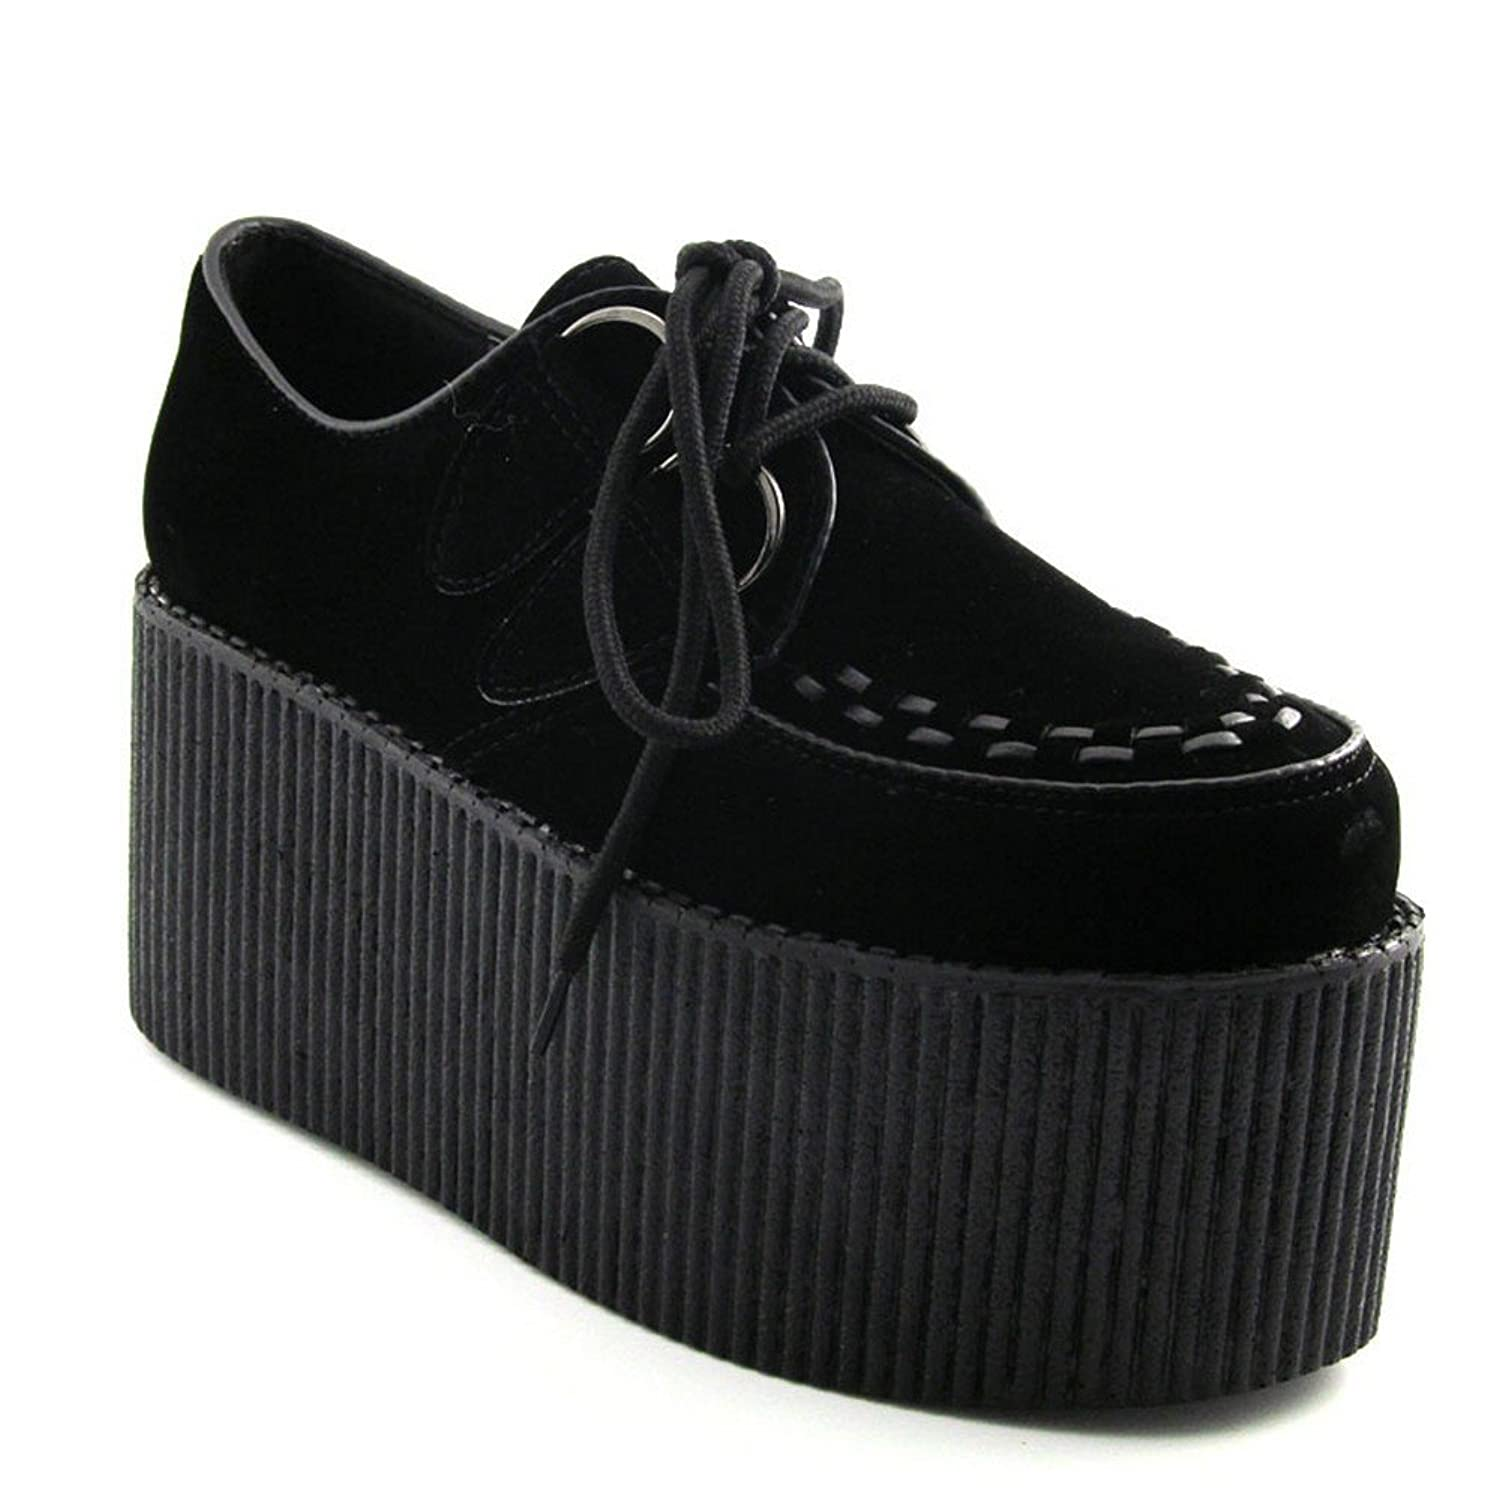 LADIES HIGH PLATFORM WOMENS TRENDY RETRO FLAT TRIPLE CREEPER 3 ...